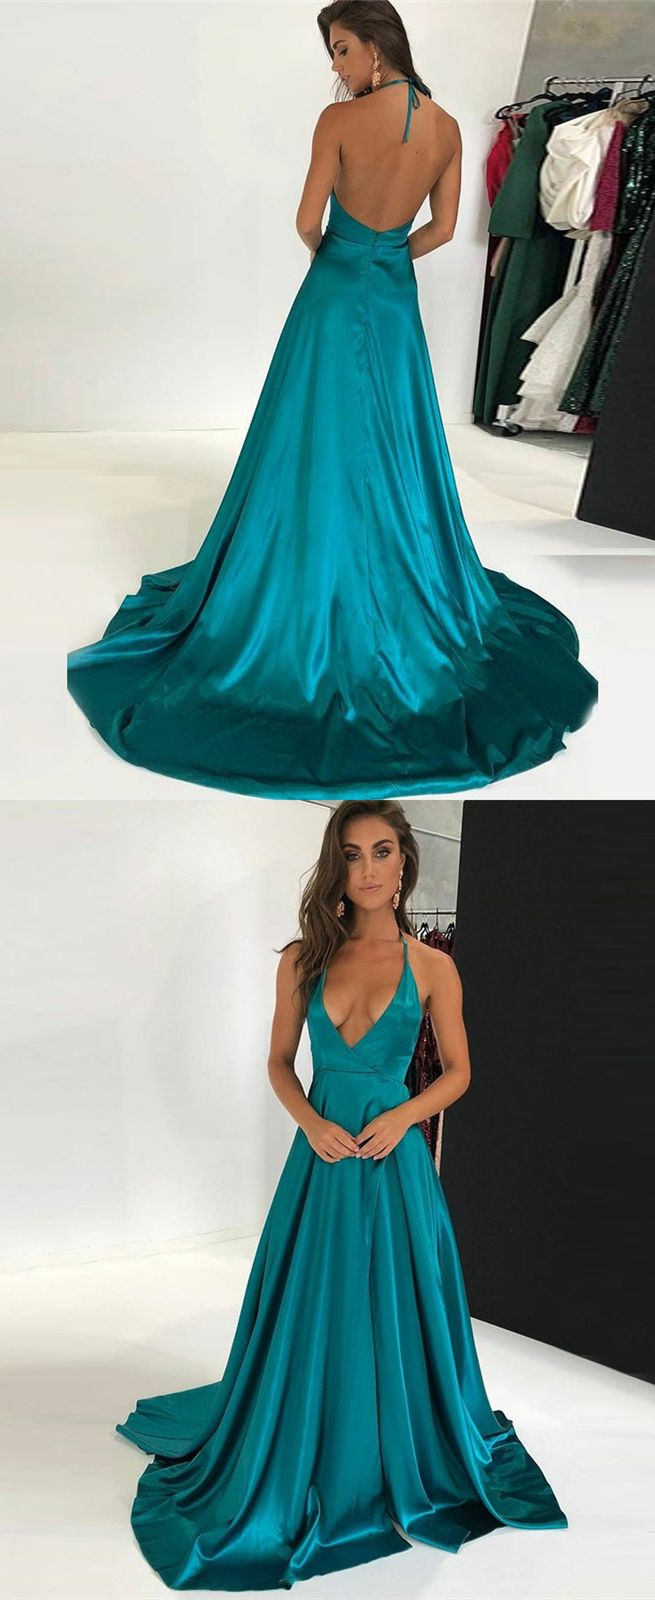 Aline halter backless sweep train turquoise prom dress in